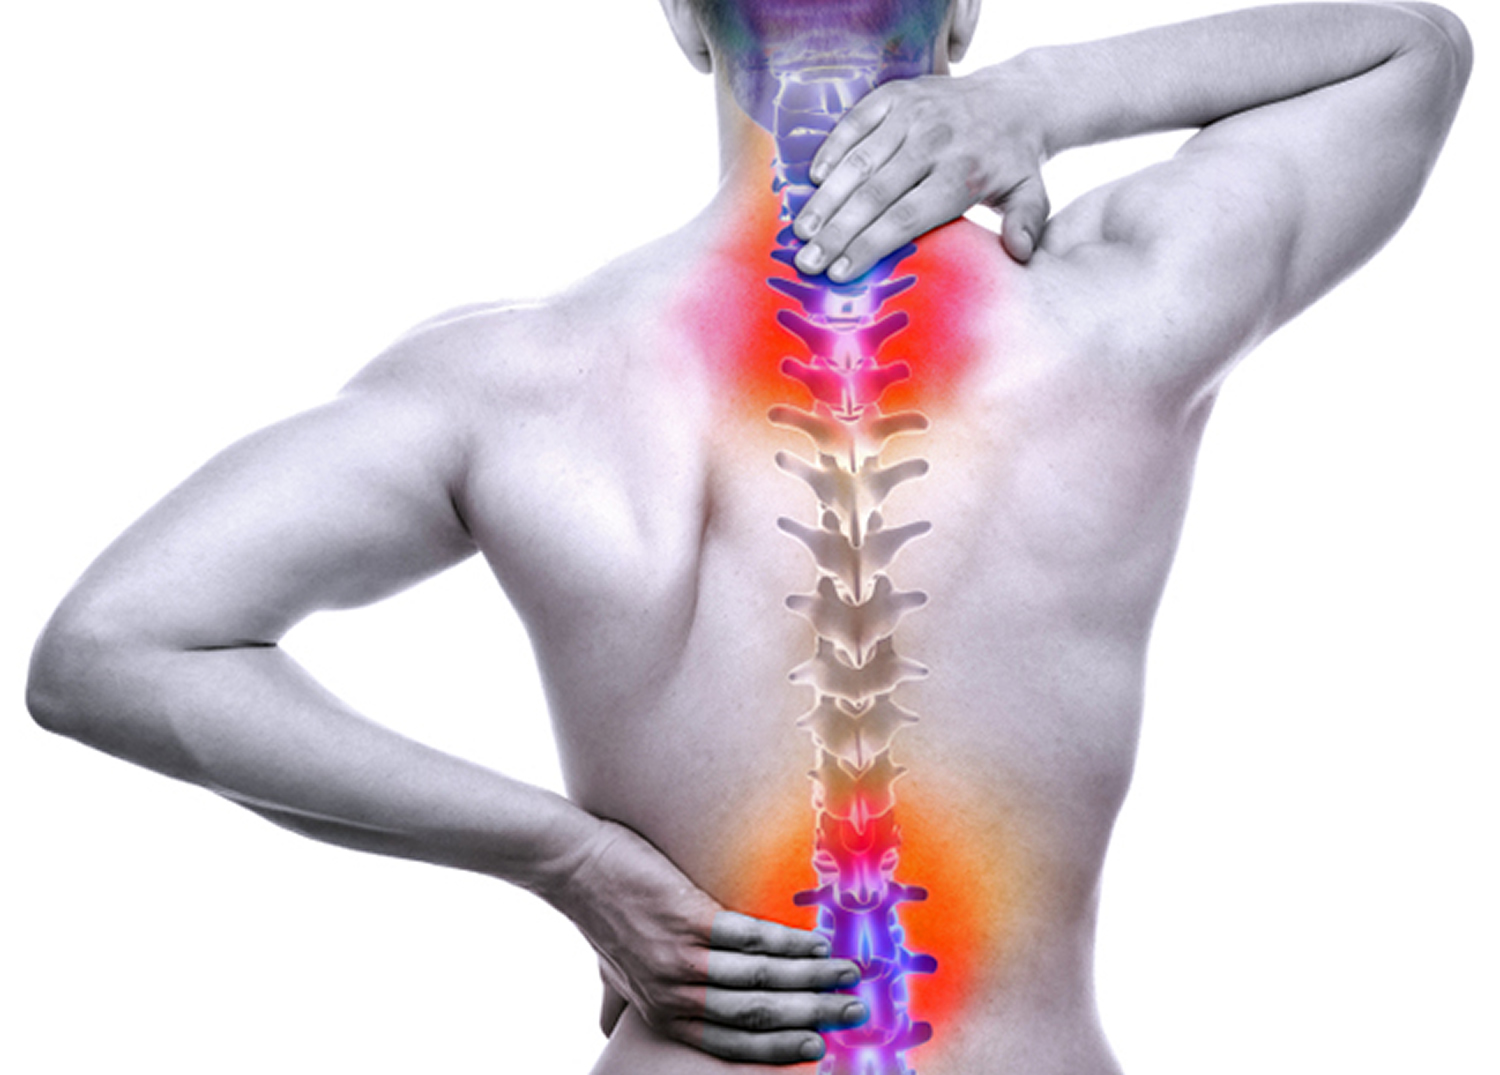 Spinal Cord Injury Recovery May Have A Very Simple Solution